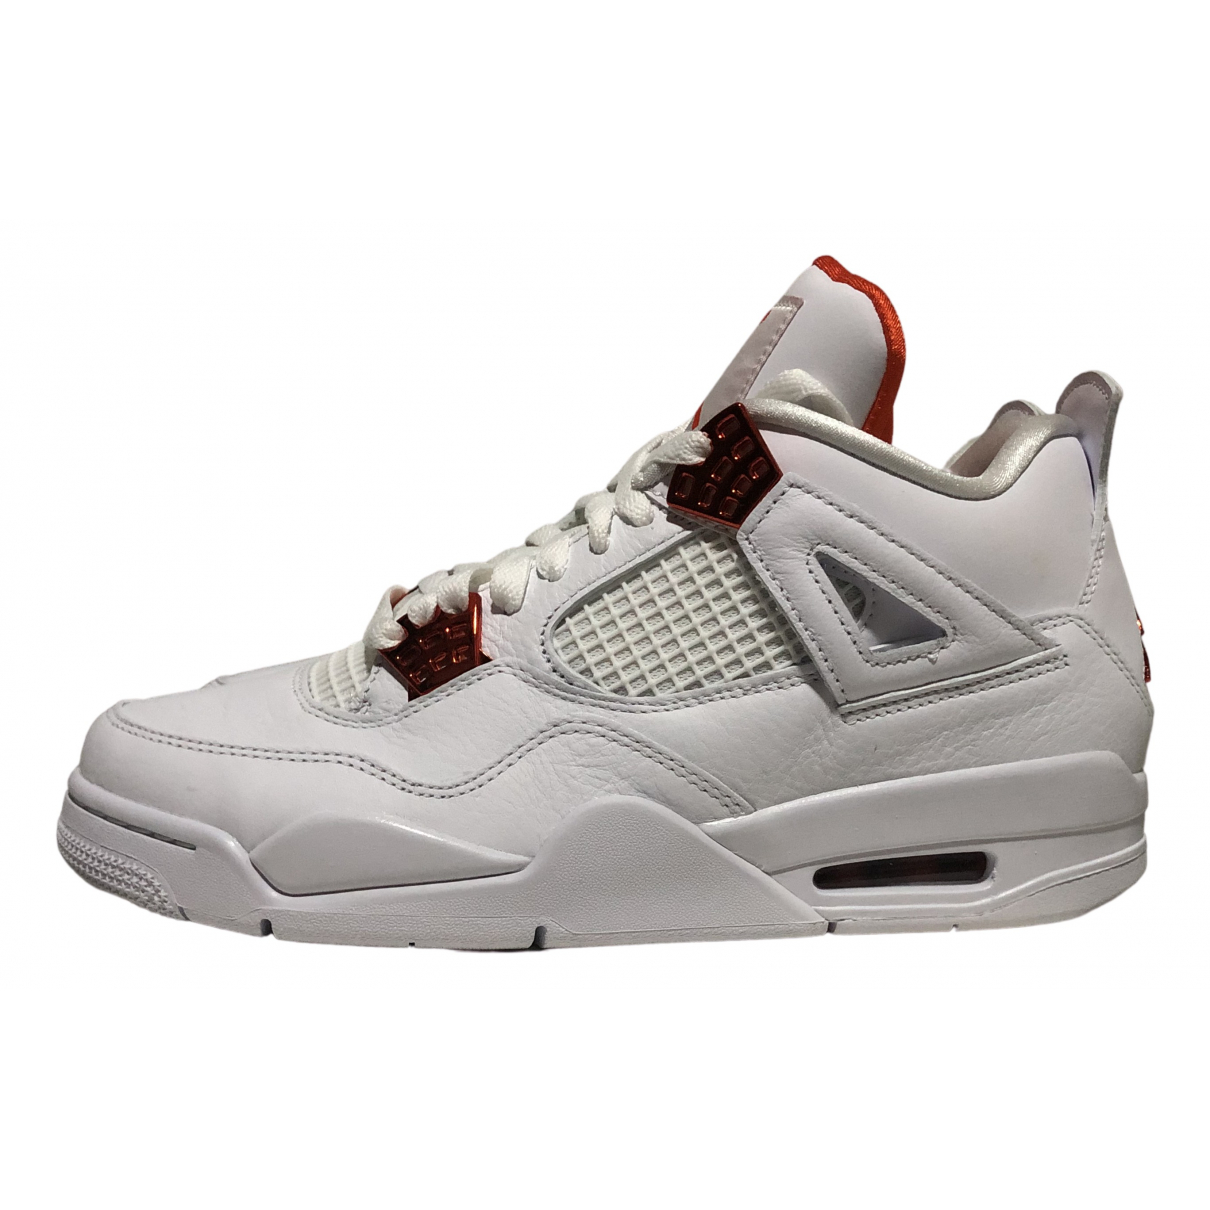 Jordan - Baskets Air Jordan 4 pour homme en cuir - orange